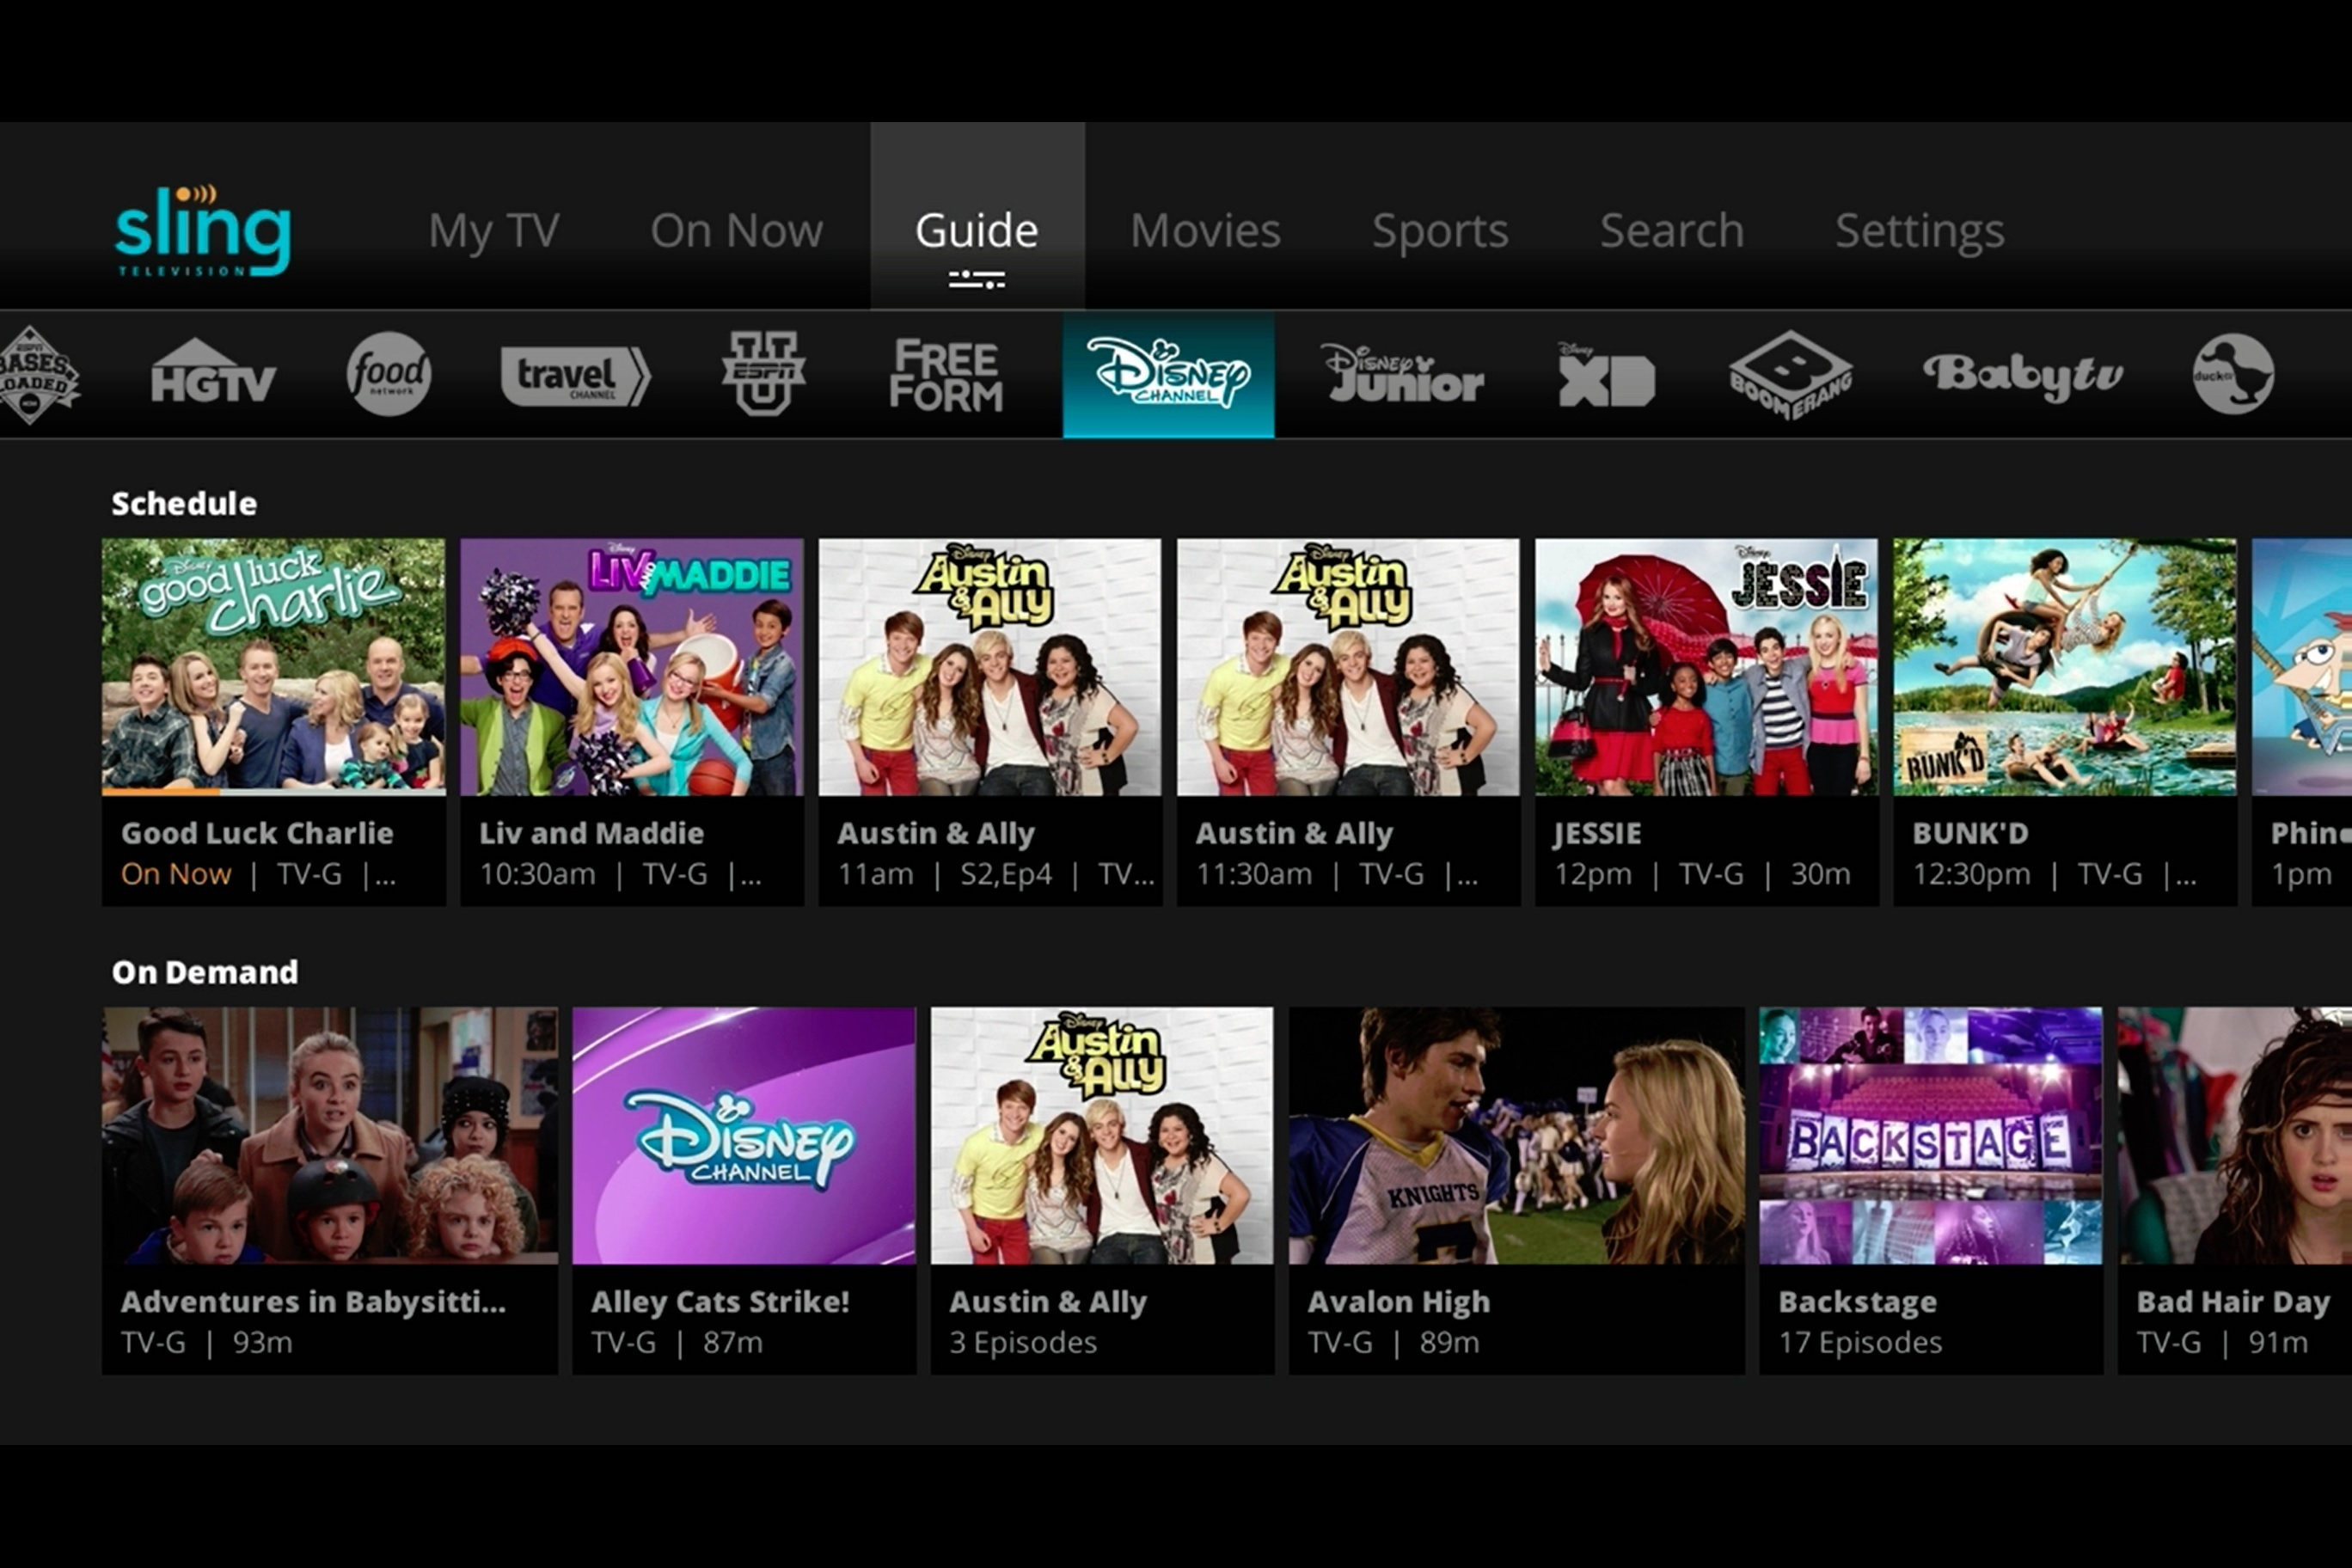 Sling Tv Channel Extras Offer More Cord Cutter Entertainment